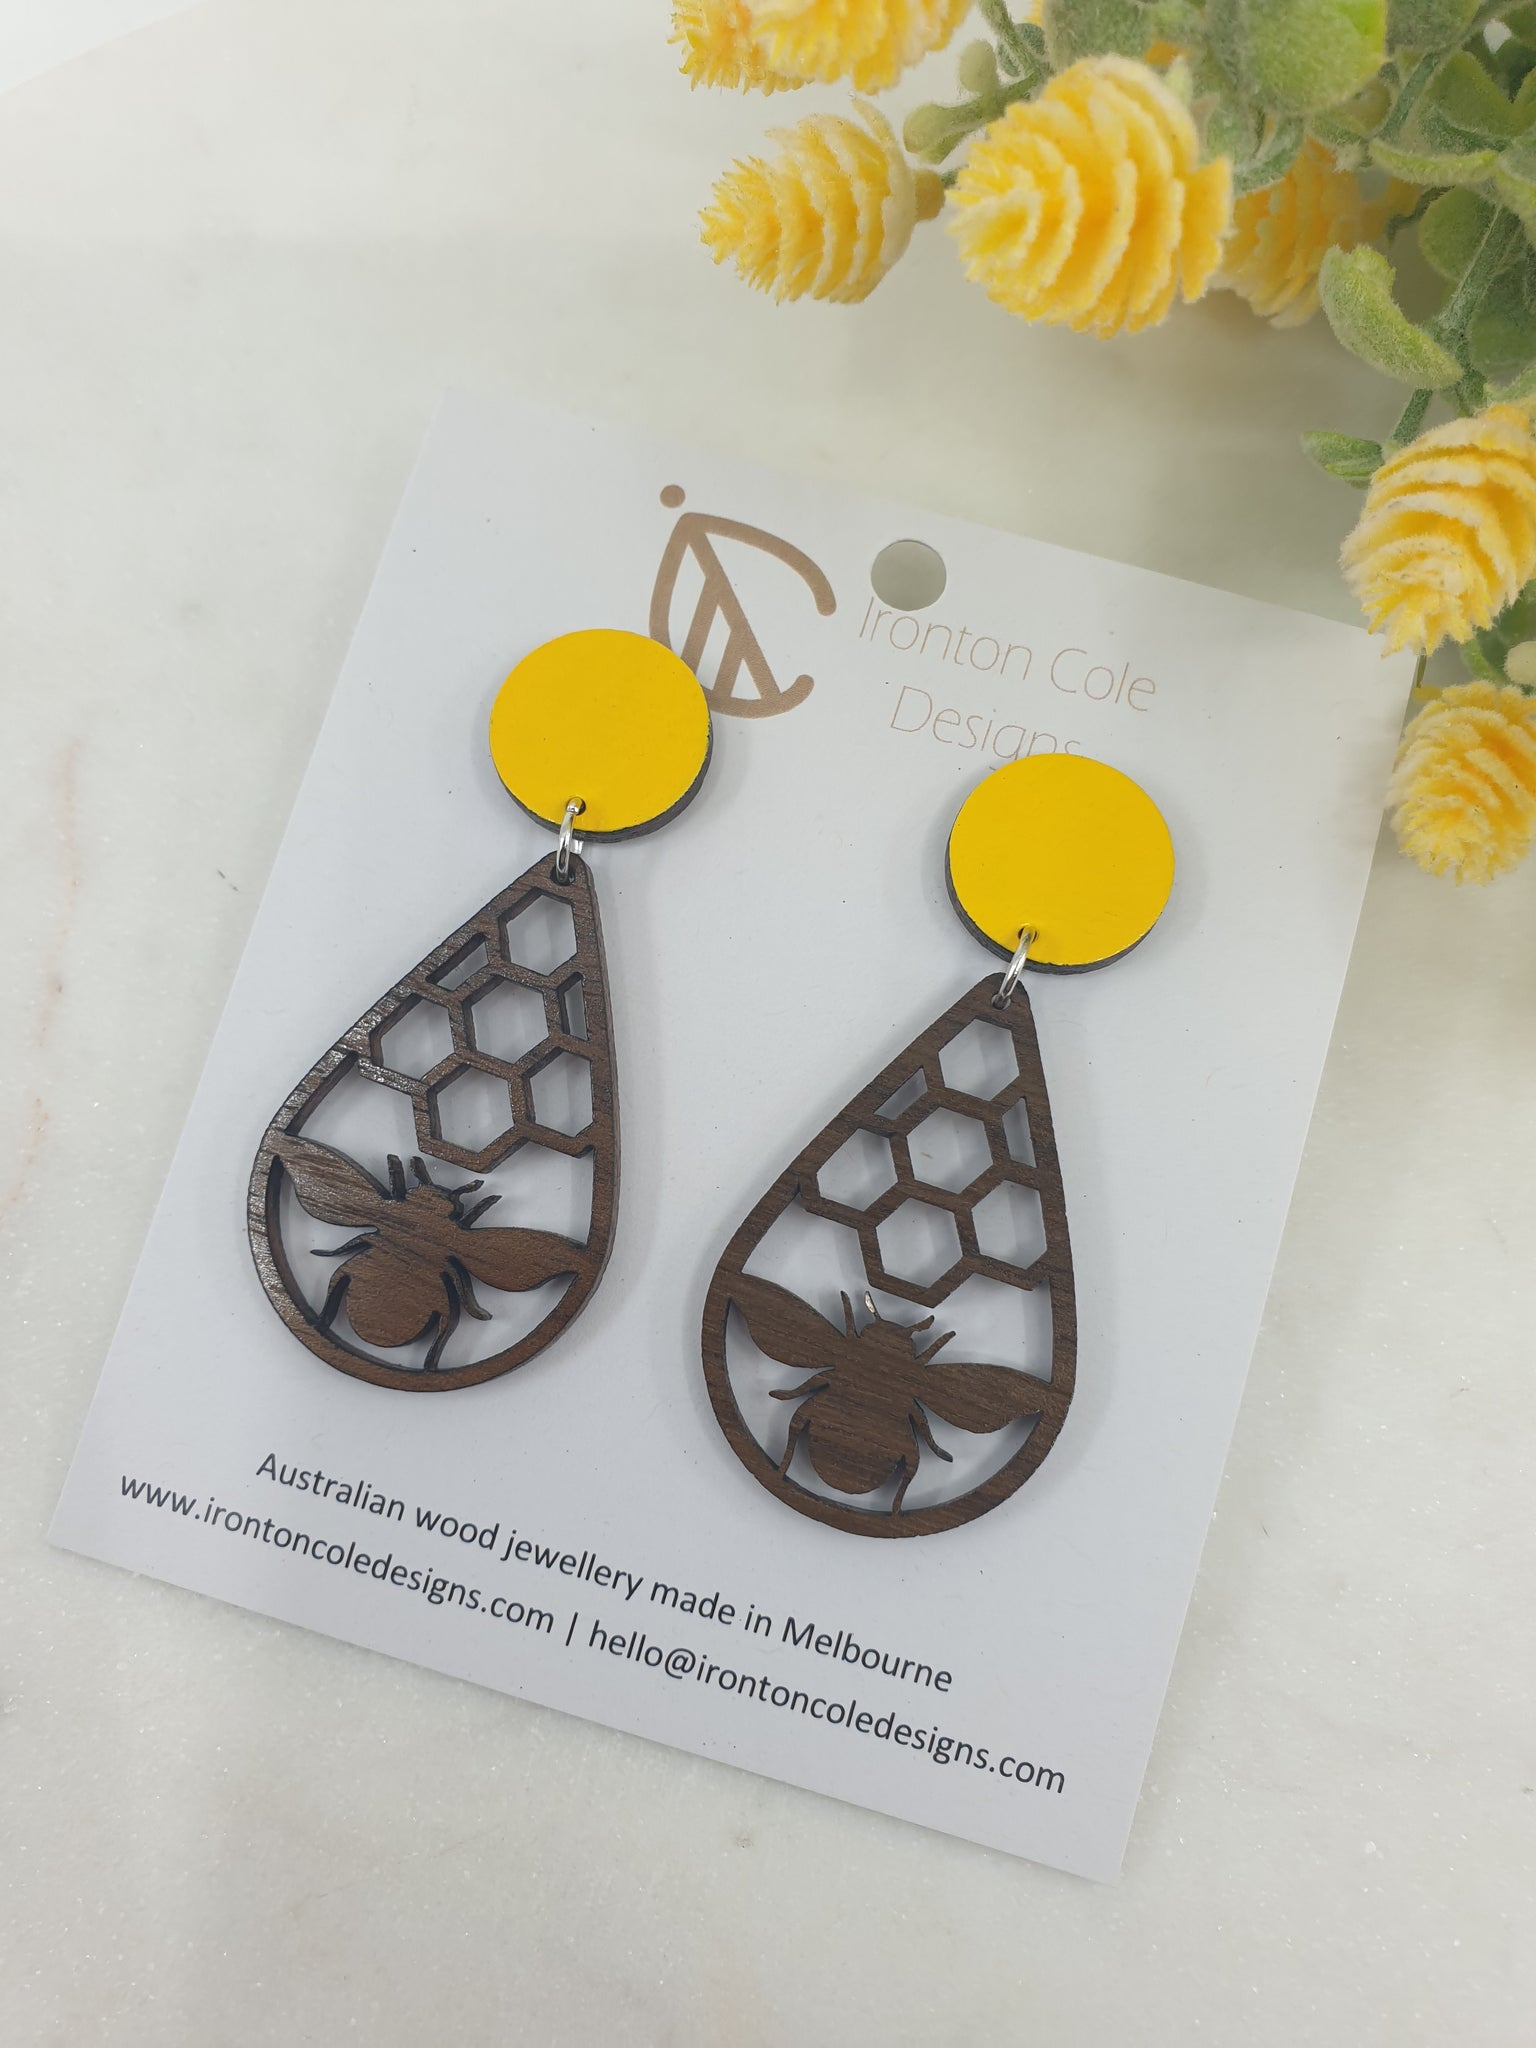 bee and honey comb earrings made from queensland walnut matched with a hand painted yellow disc.